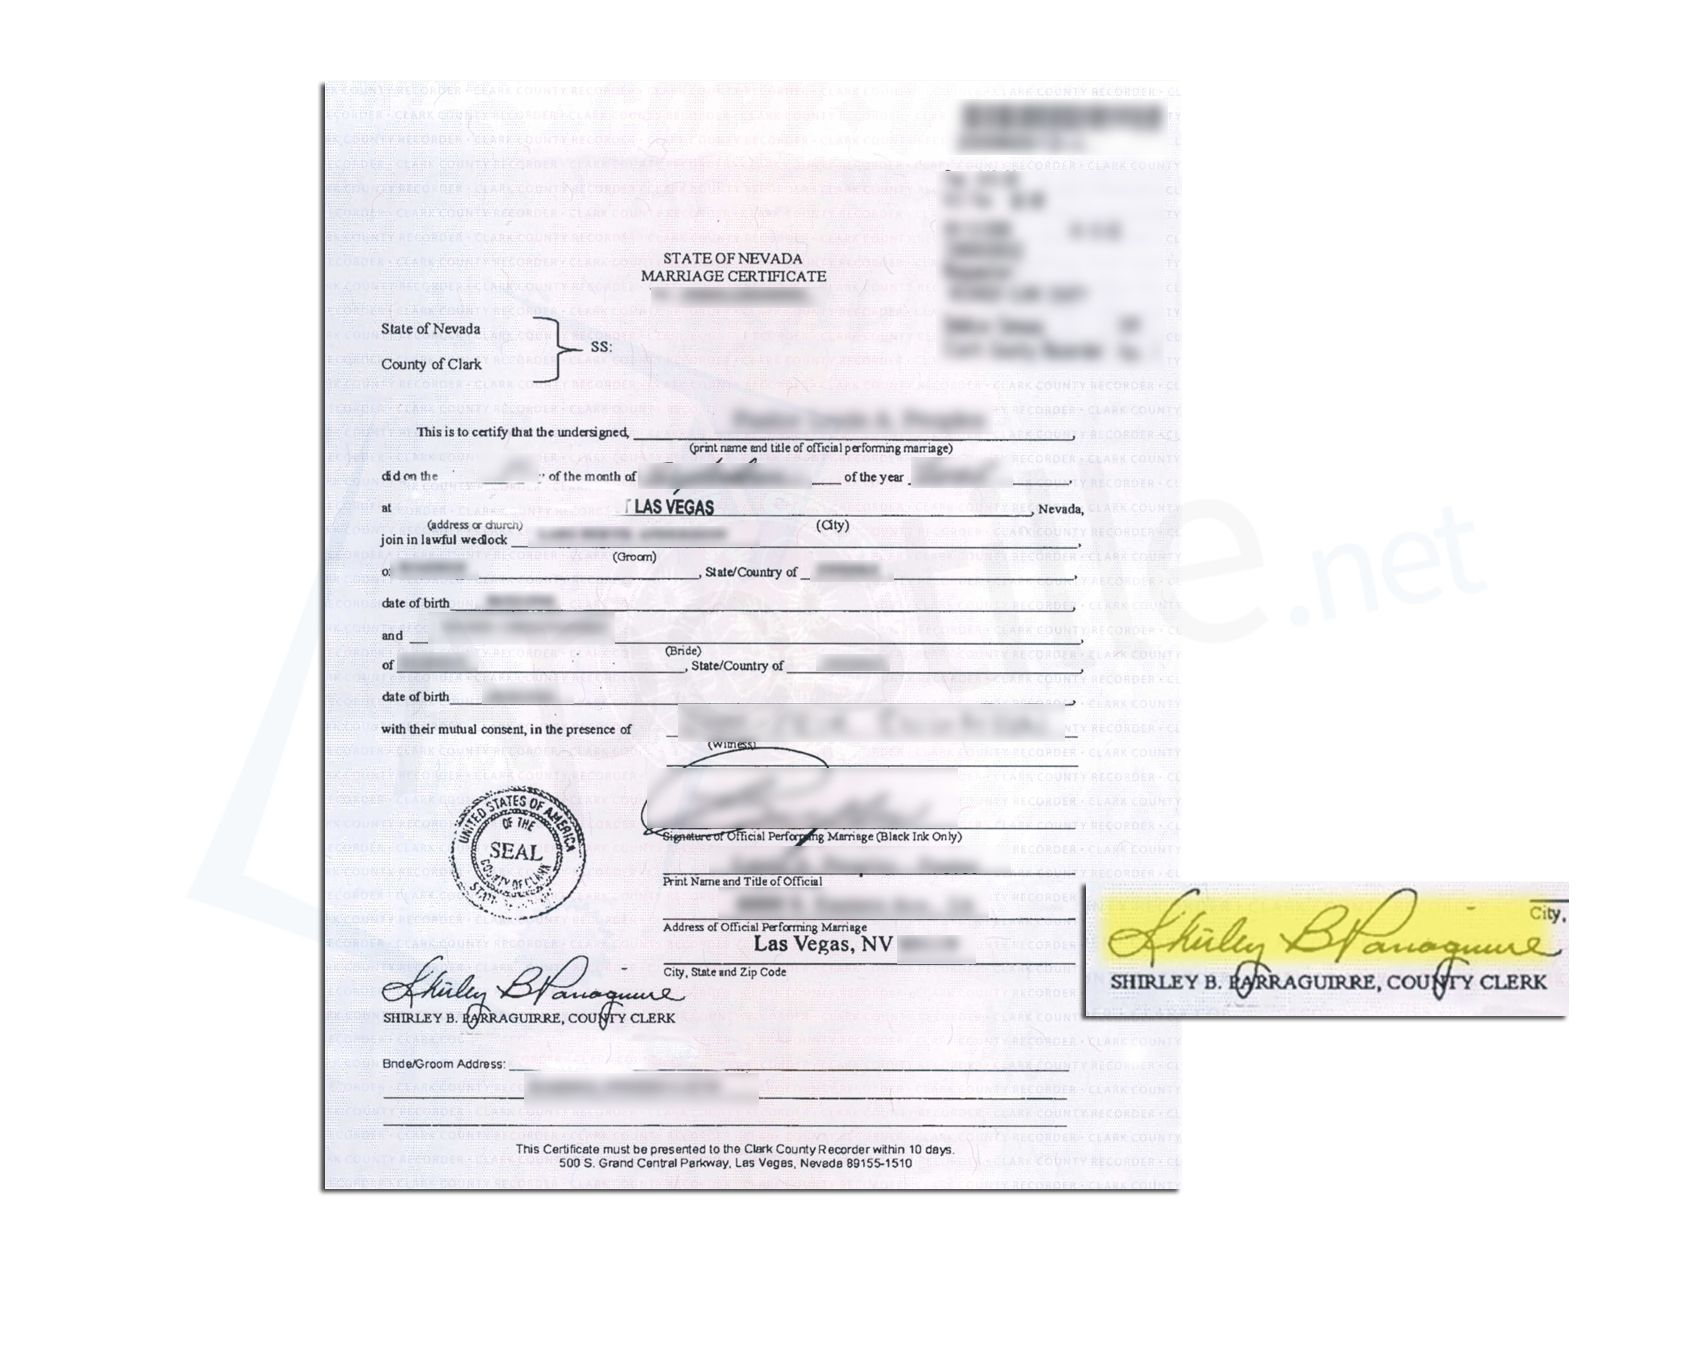 Vintage Marriage Certificate Washoe County Nevada: State Of Nevada Marriage Certificate Issued By Shirley B